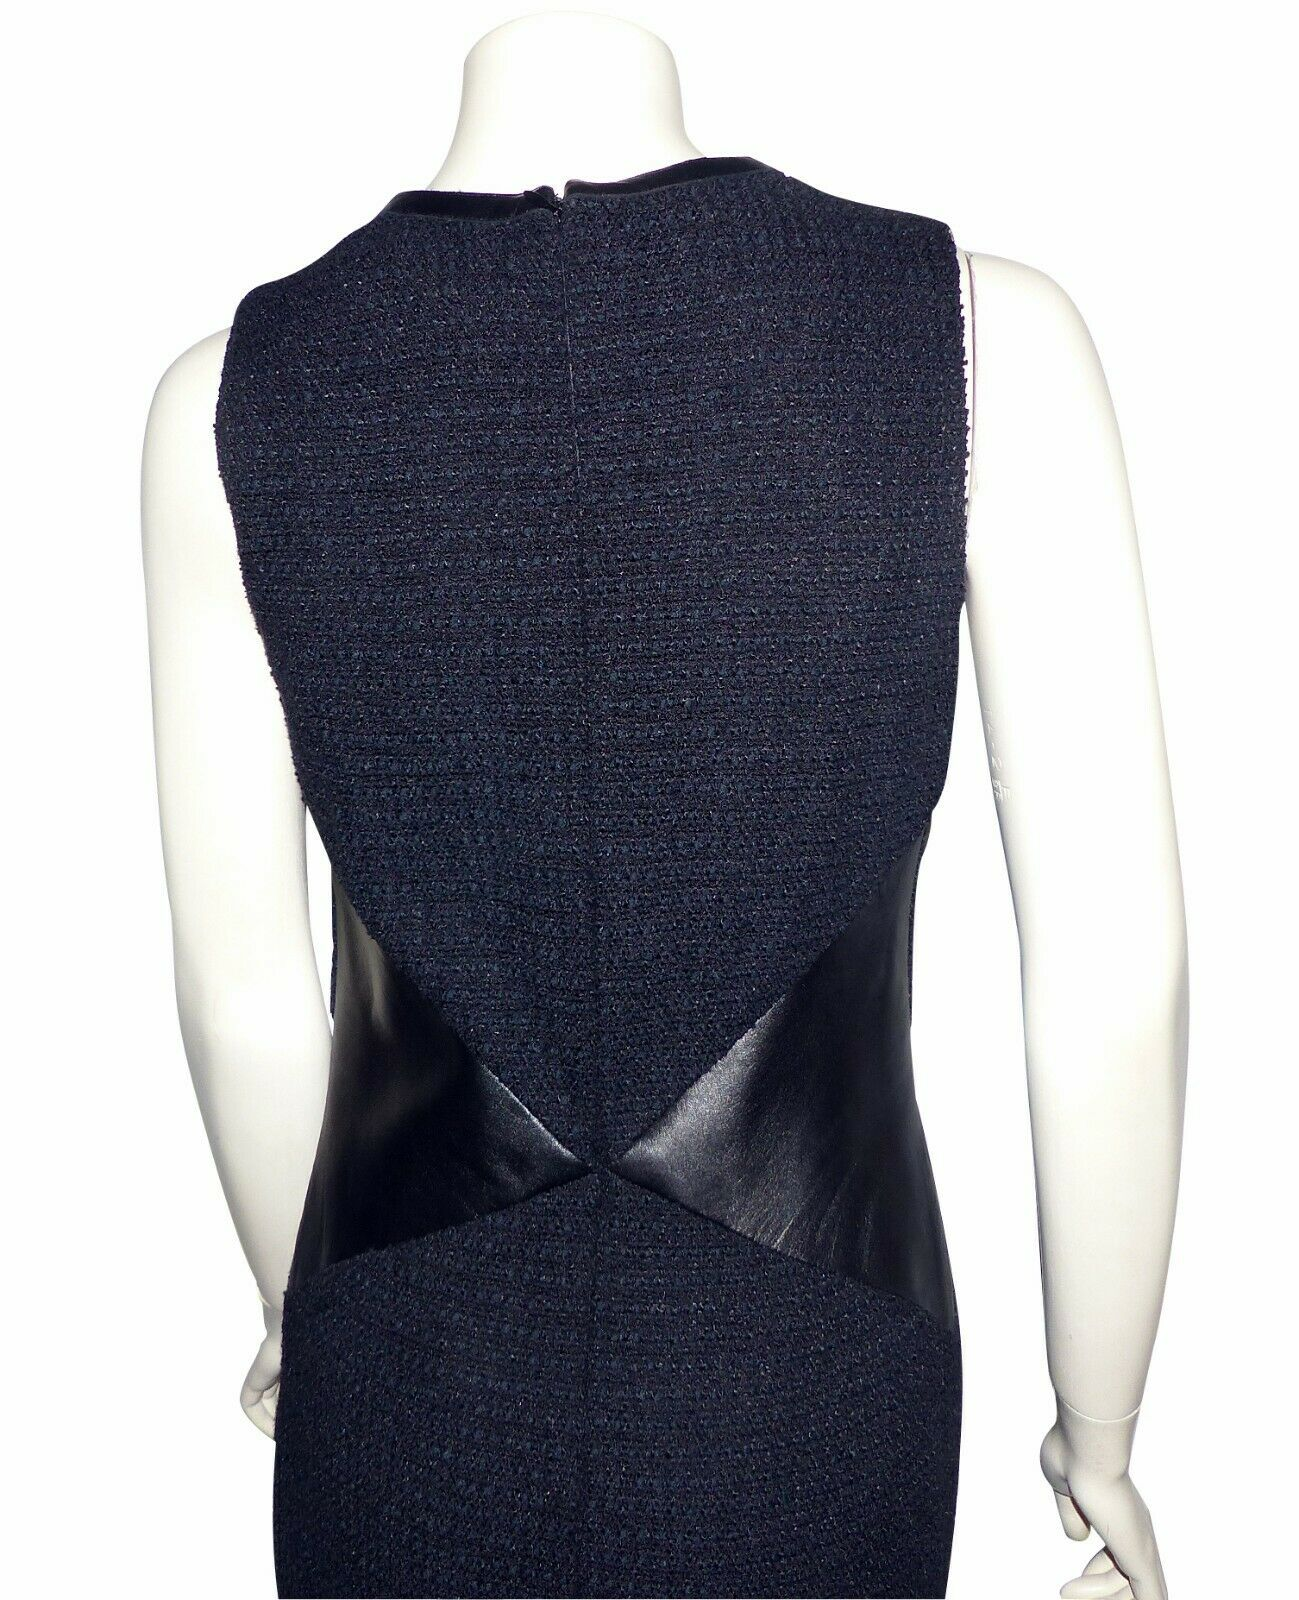 Chanel - robe noire tweed tissÉe et cuir - black chanel dress